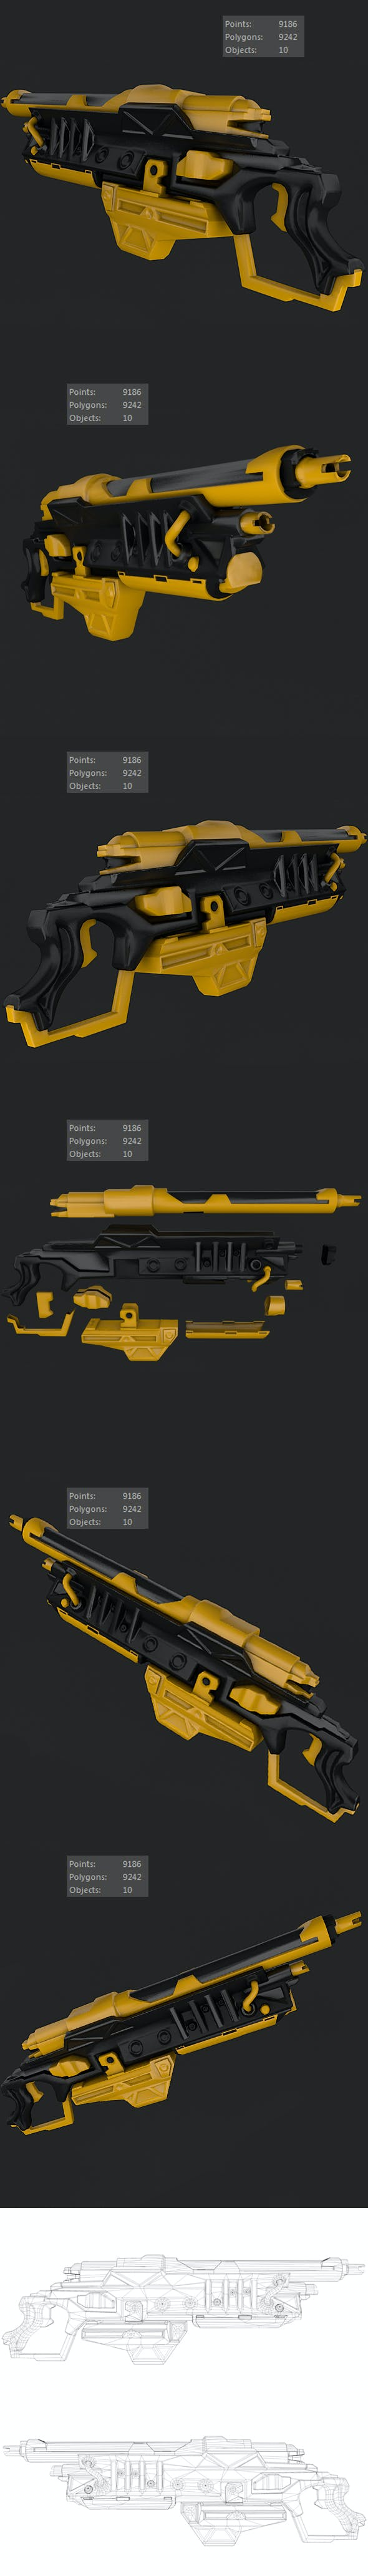 Sci-Fi Gun 01 - 3DOcean Item for Sale